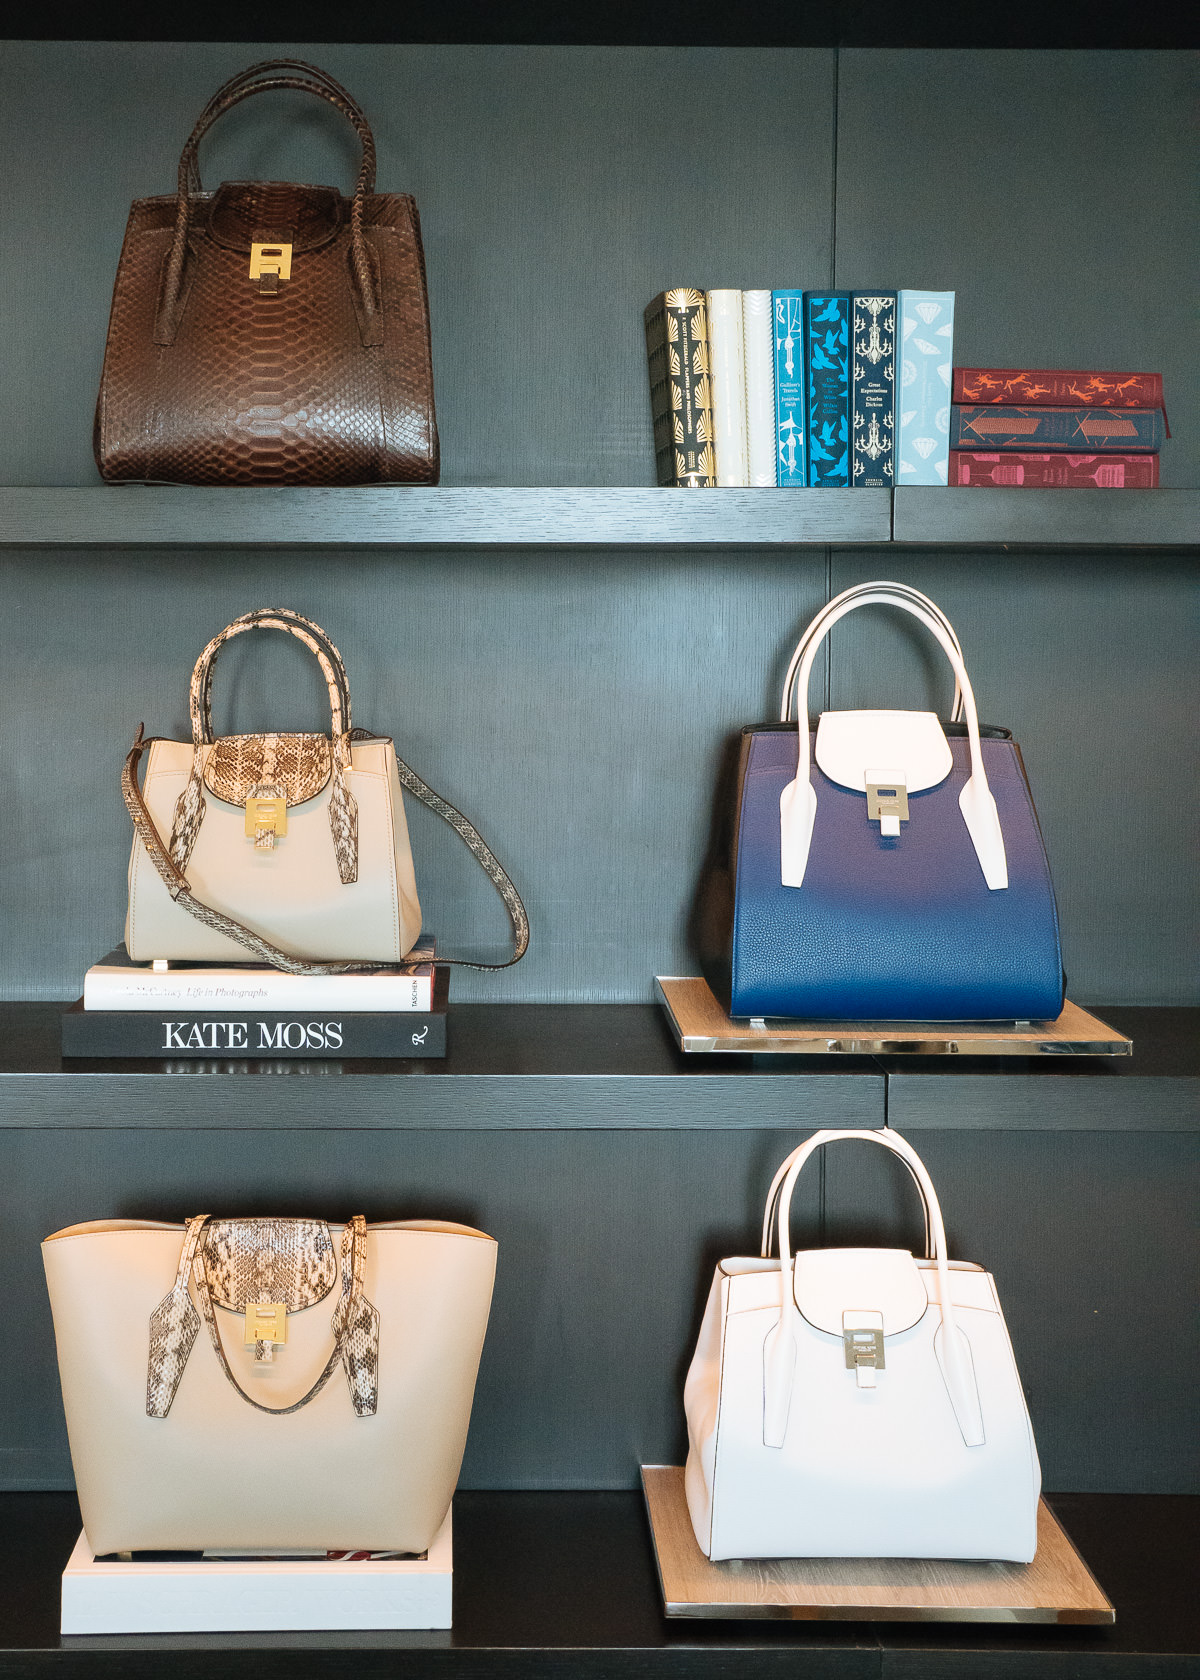 c8da7932e12d While the bags I previewed are part of the Michael Kors Resort 2018  collection, The Bancroft Collection first launches for Fall 2017, hitting  stores ...